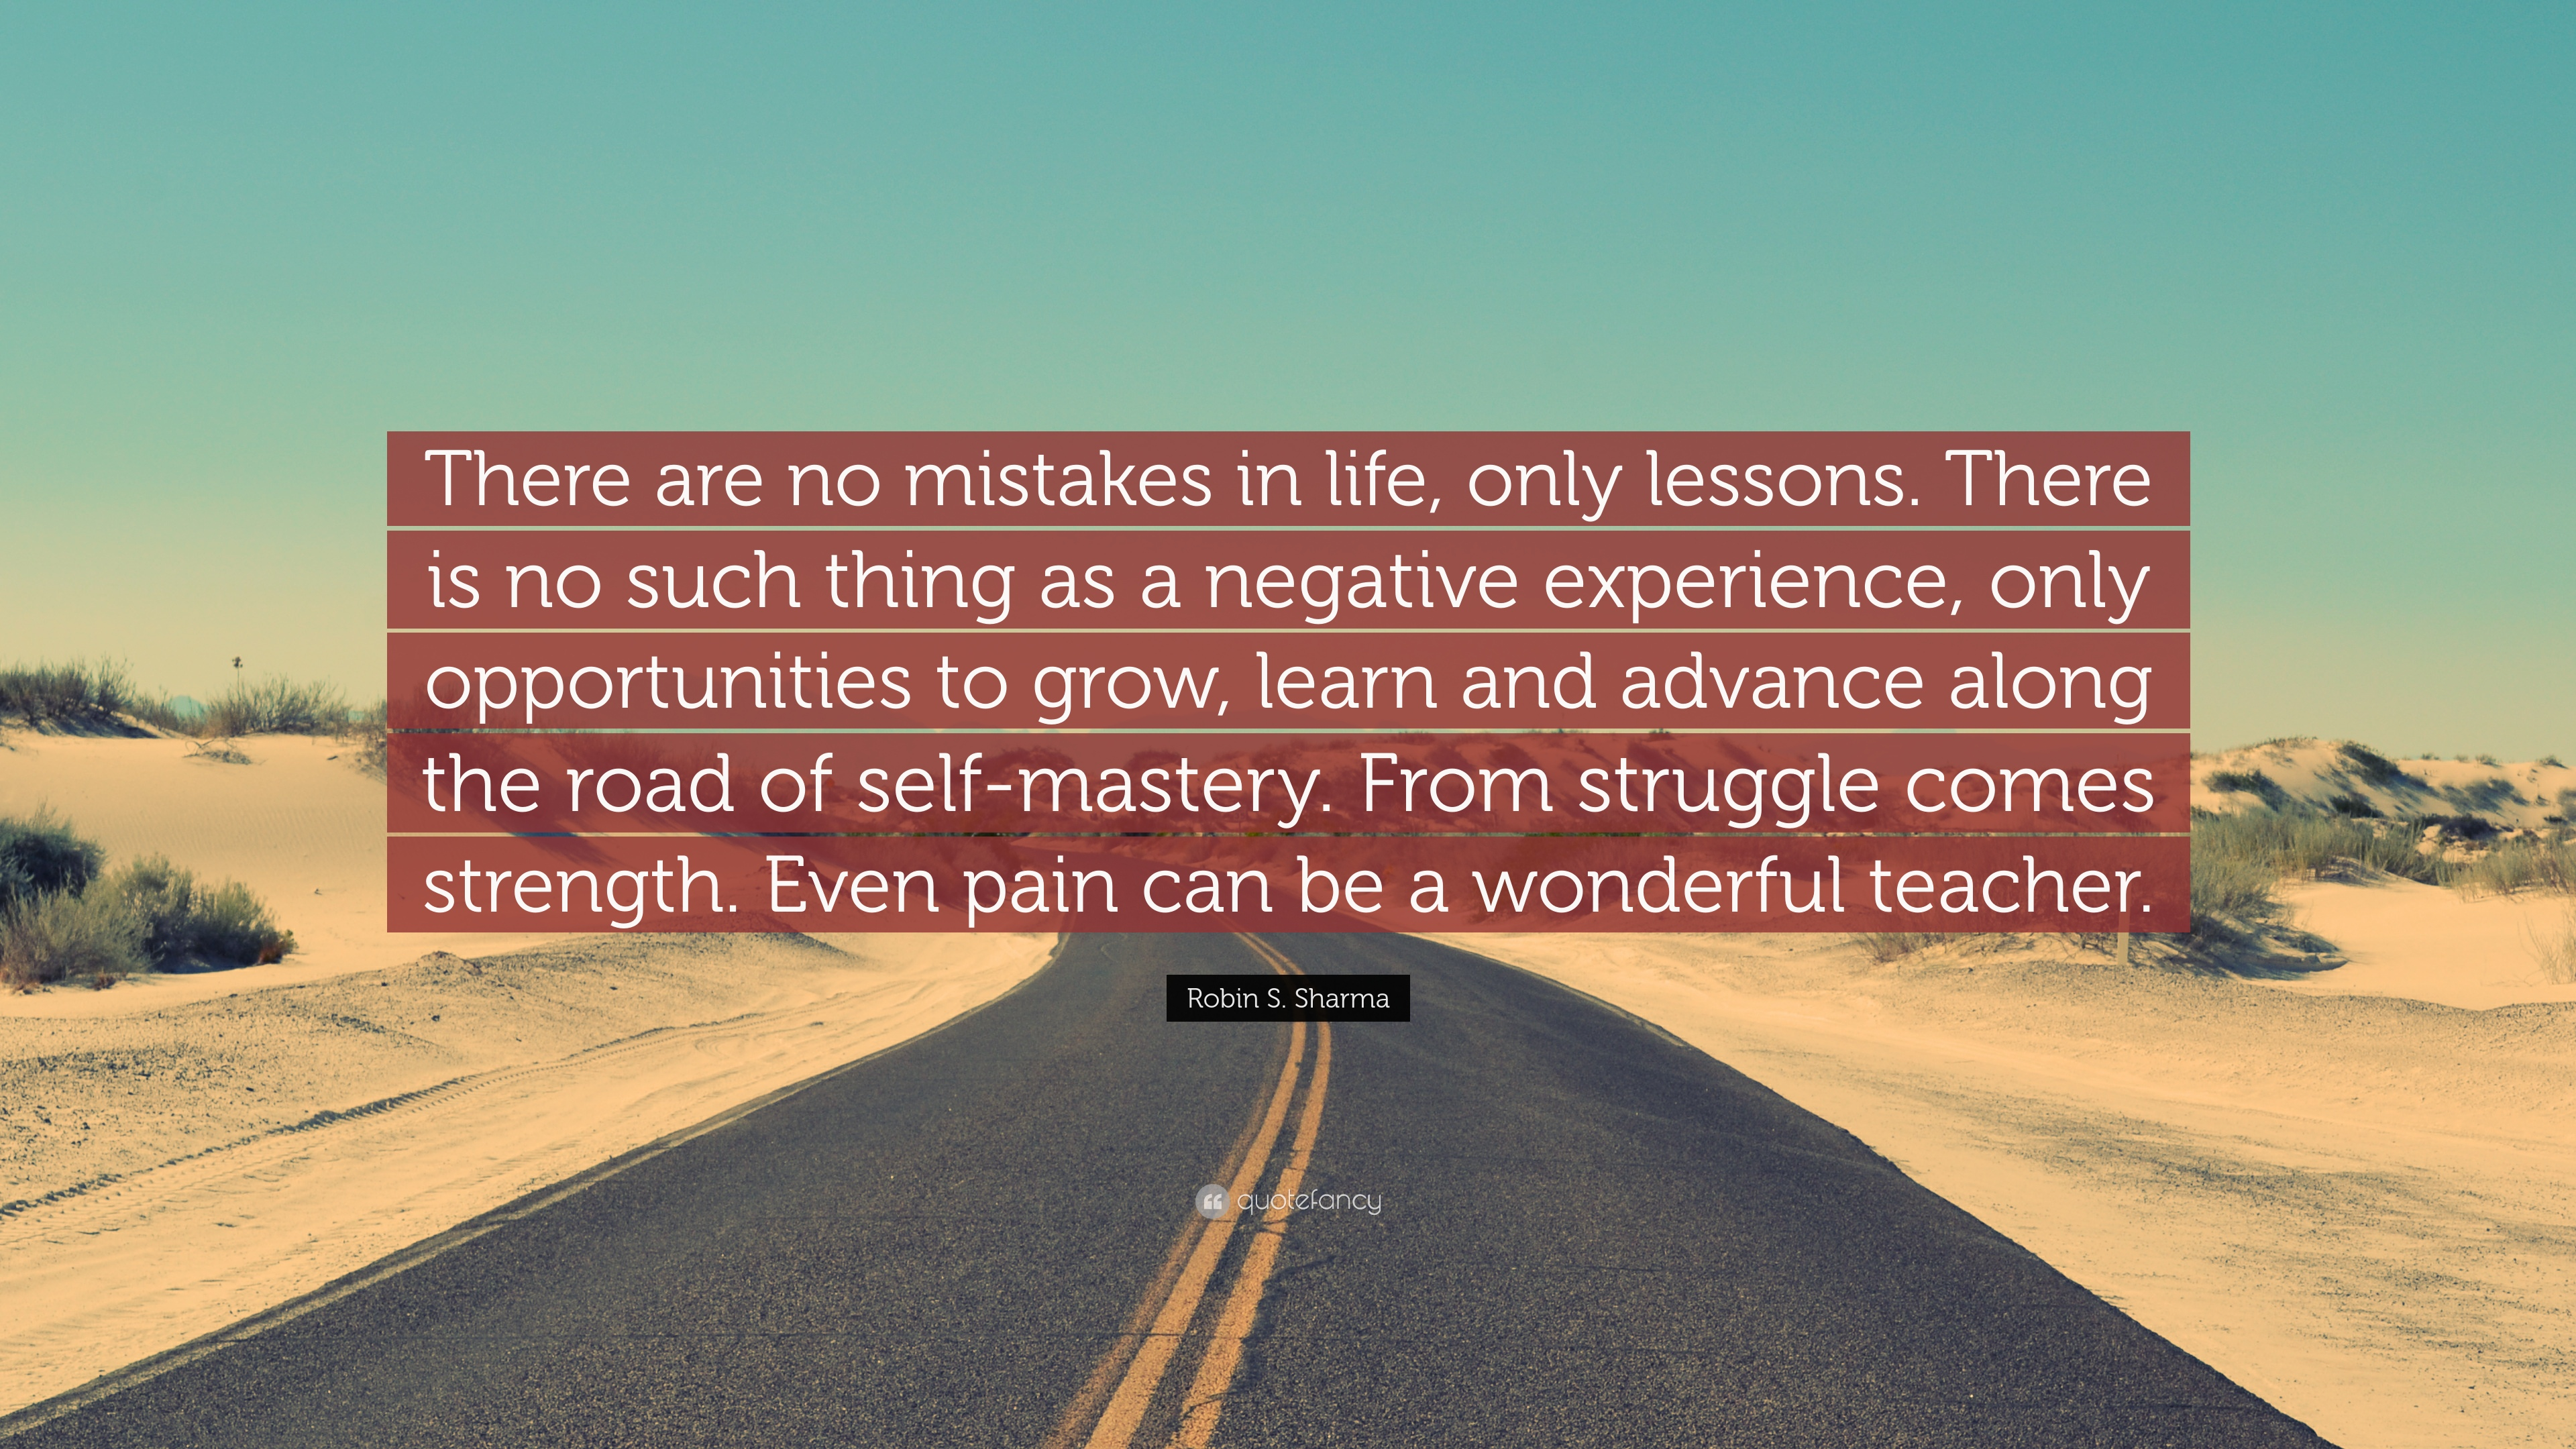 Mistake Quotes: U201cThere Are No Mistakes In Life, Only Lessons. There Is